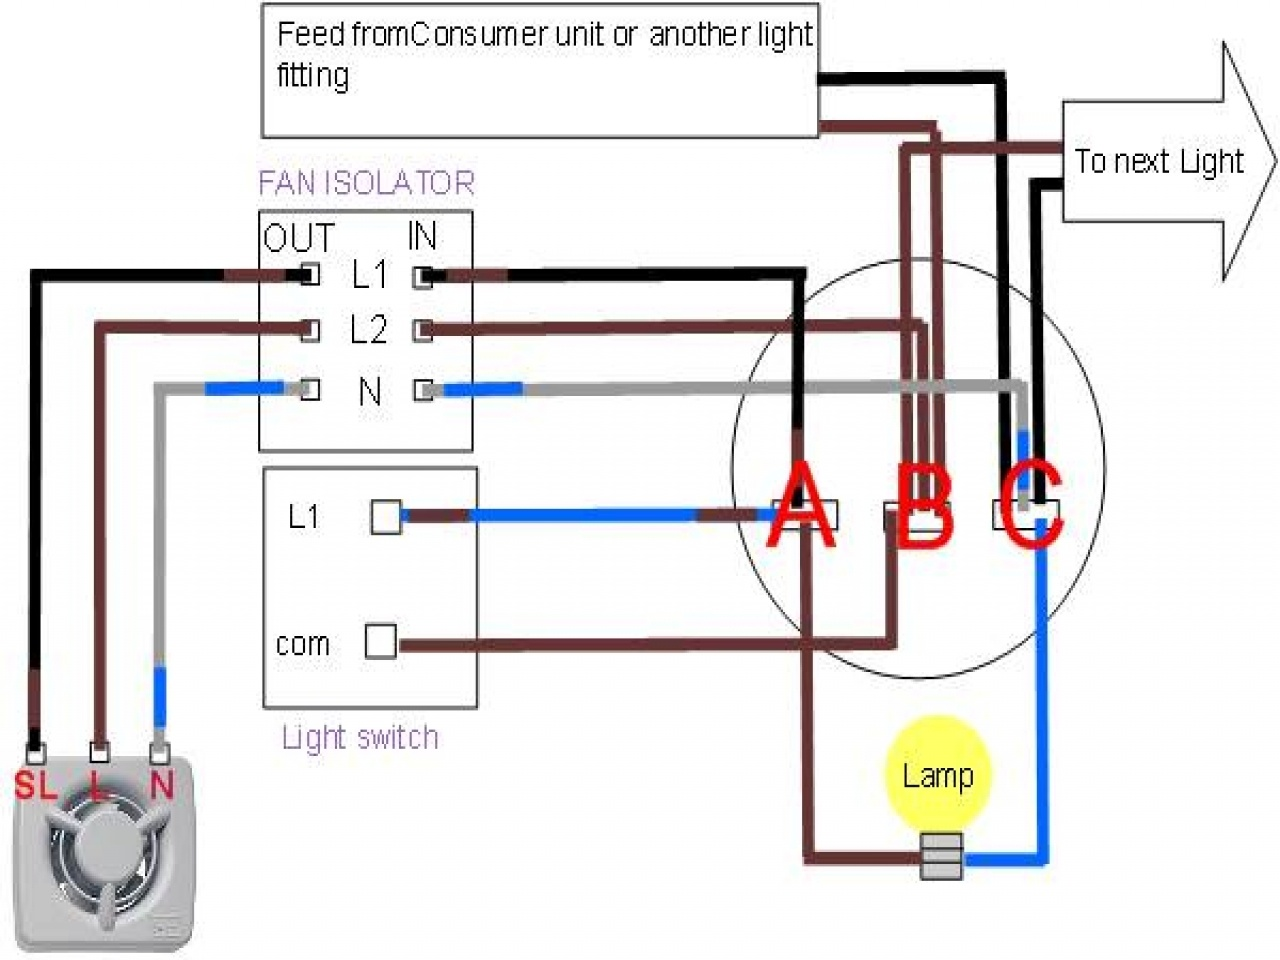 Broan Exhaust Fan Light Wiring Diagram For Heater - Ipod 8 Pin Wiring  Diagram for Wiring Diagram Schematics | Bath Heater Fan Switch Light Wiring Diagram |  | Wiring Diagram Schematics